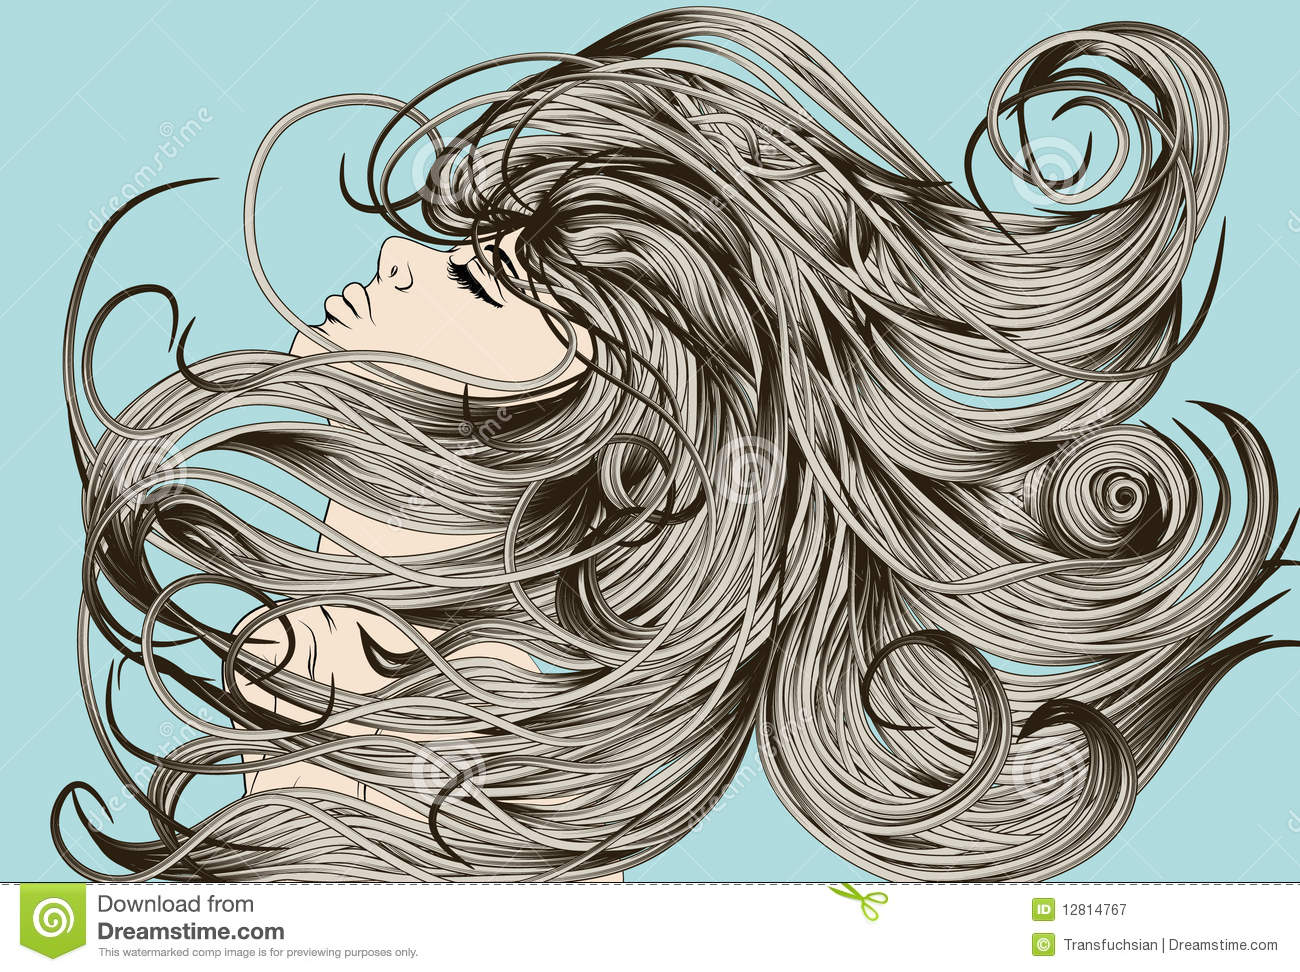 Line Drawing Of Child S Face : Woman s face flipping detailed hair stock vector illustration of